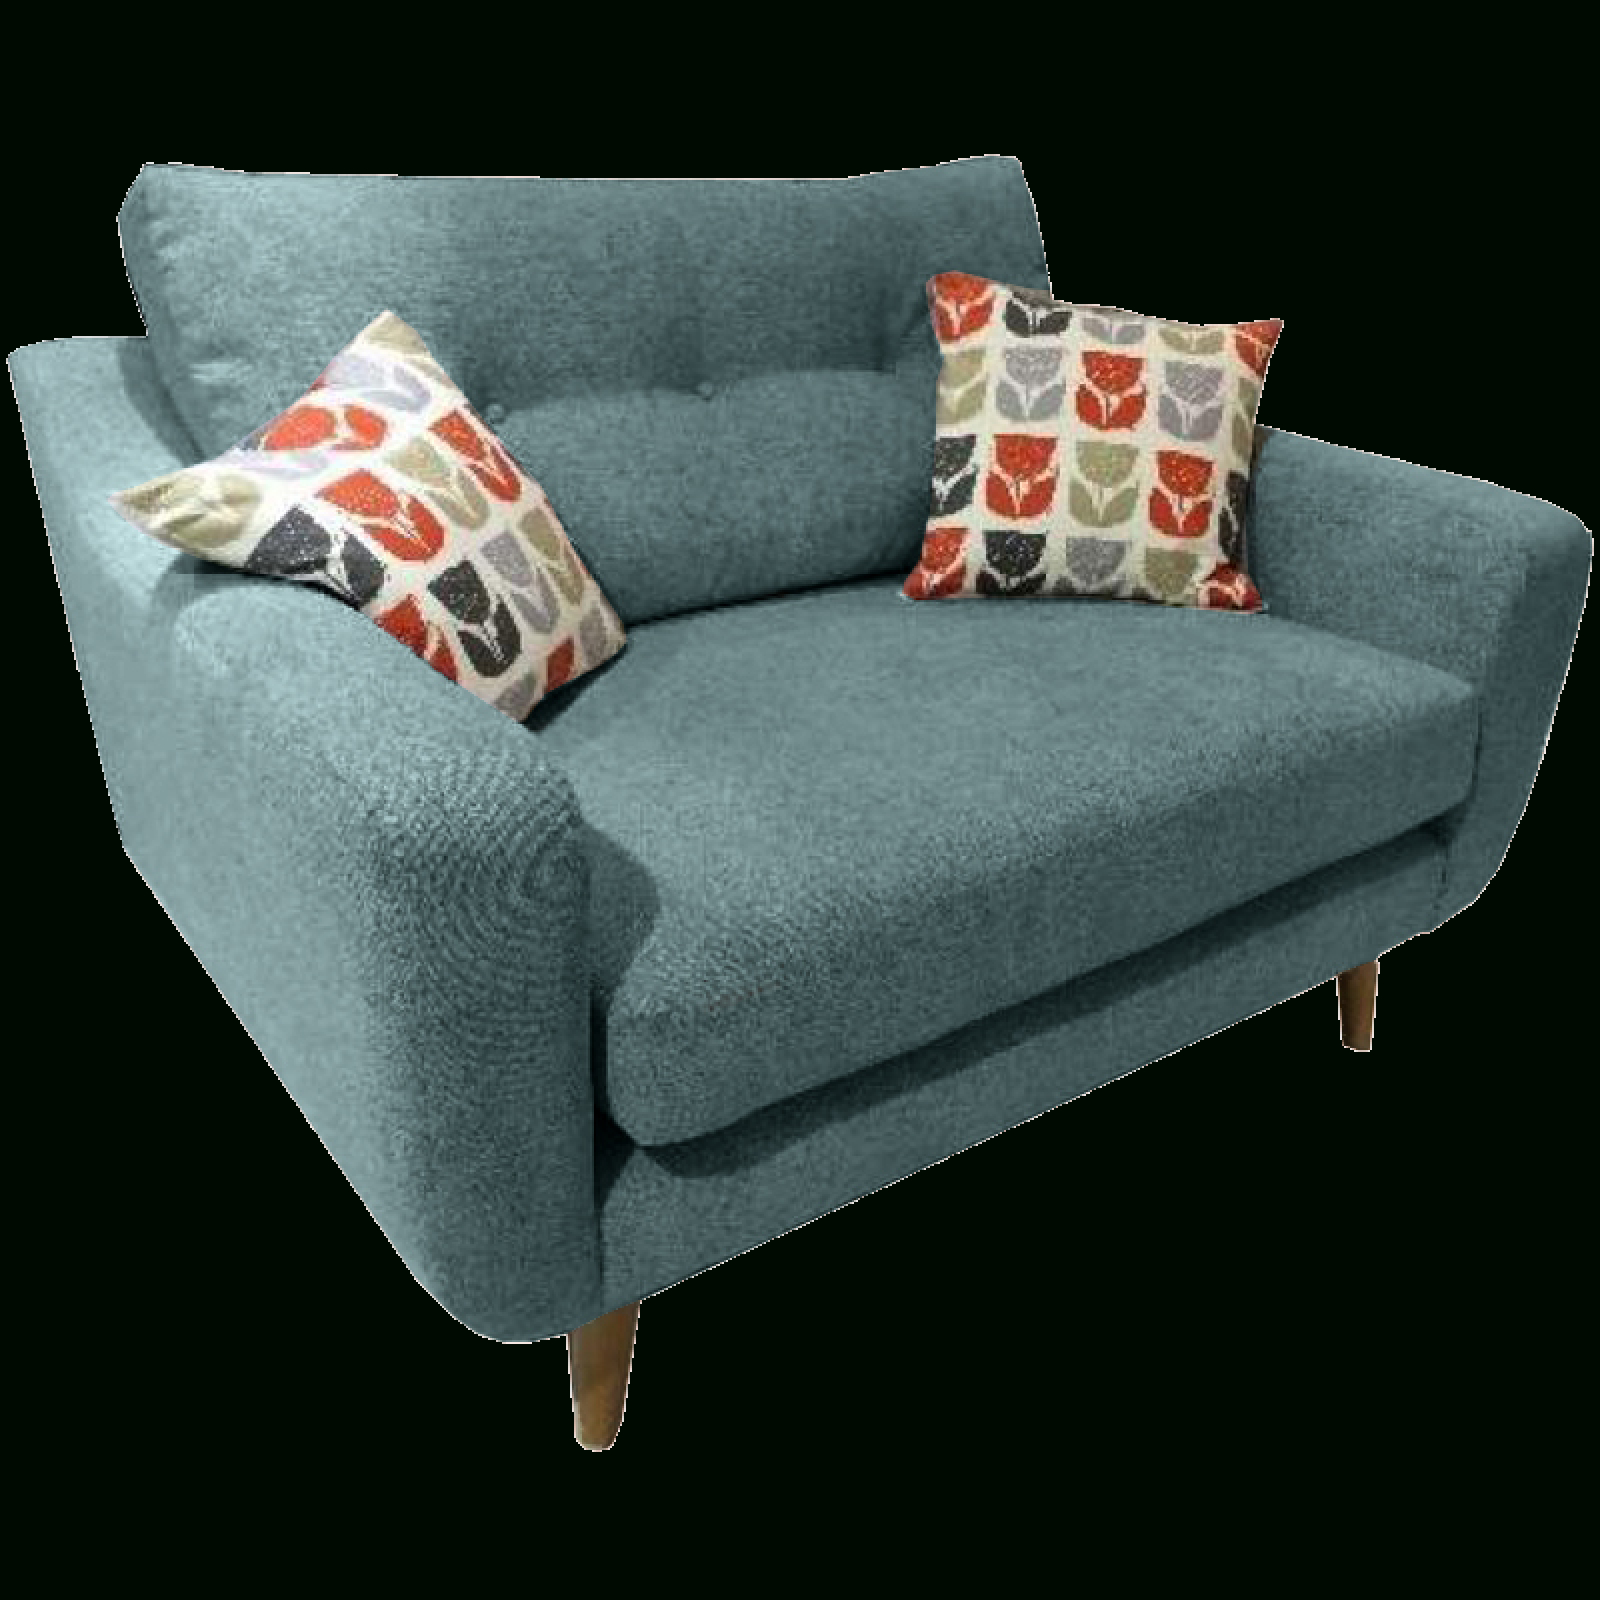 Lisbon Snuggler Sofa Chairwhitemeadow Inside Most Current 4Pc French Seamed Sectional Sofas Oblong Mustard (View 5 of 25)